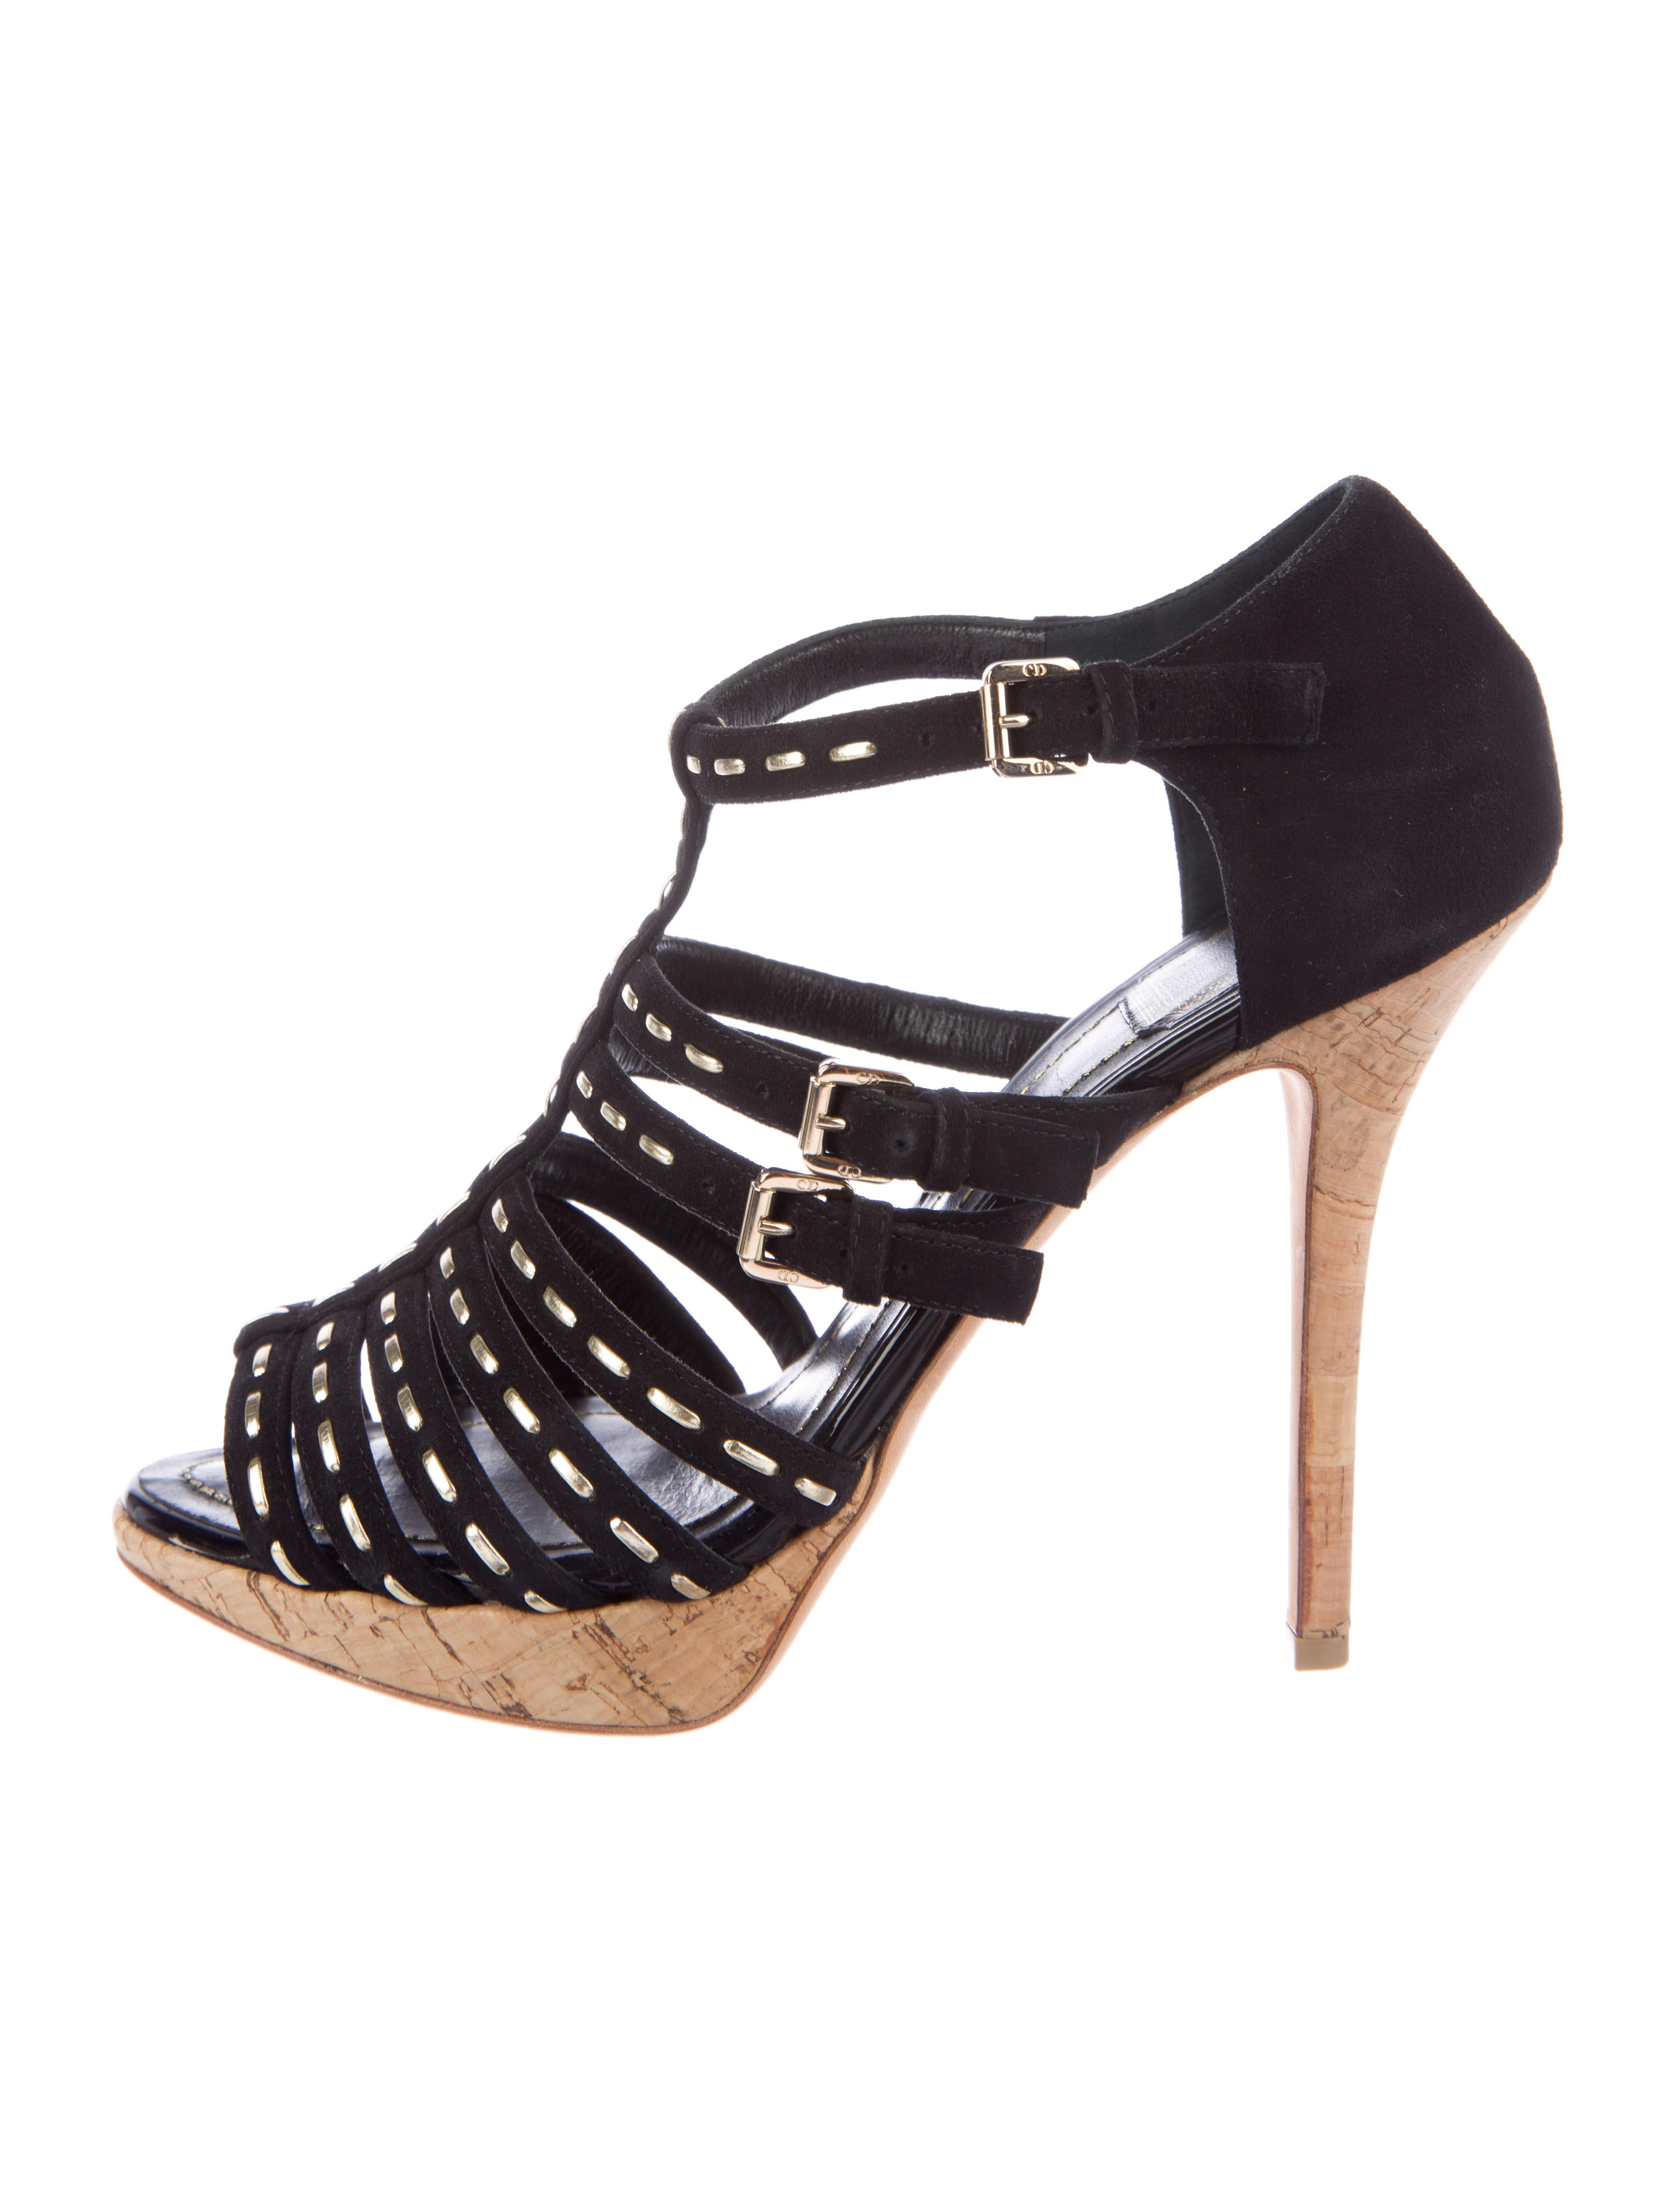 sale online cheap Christian Dior Suede Multistrap Sandals many kinds of sale online enjoy for sale clearance new free shipping cheap quality NIlhlS